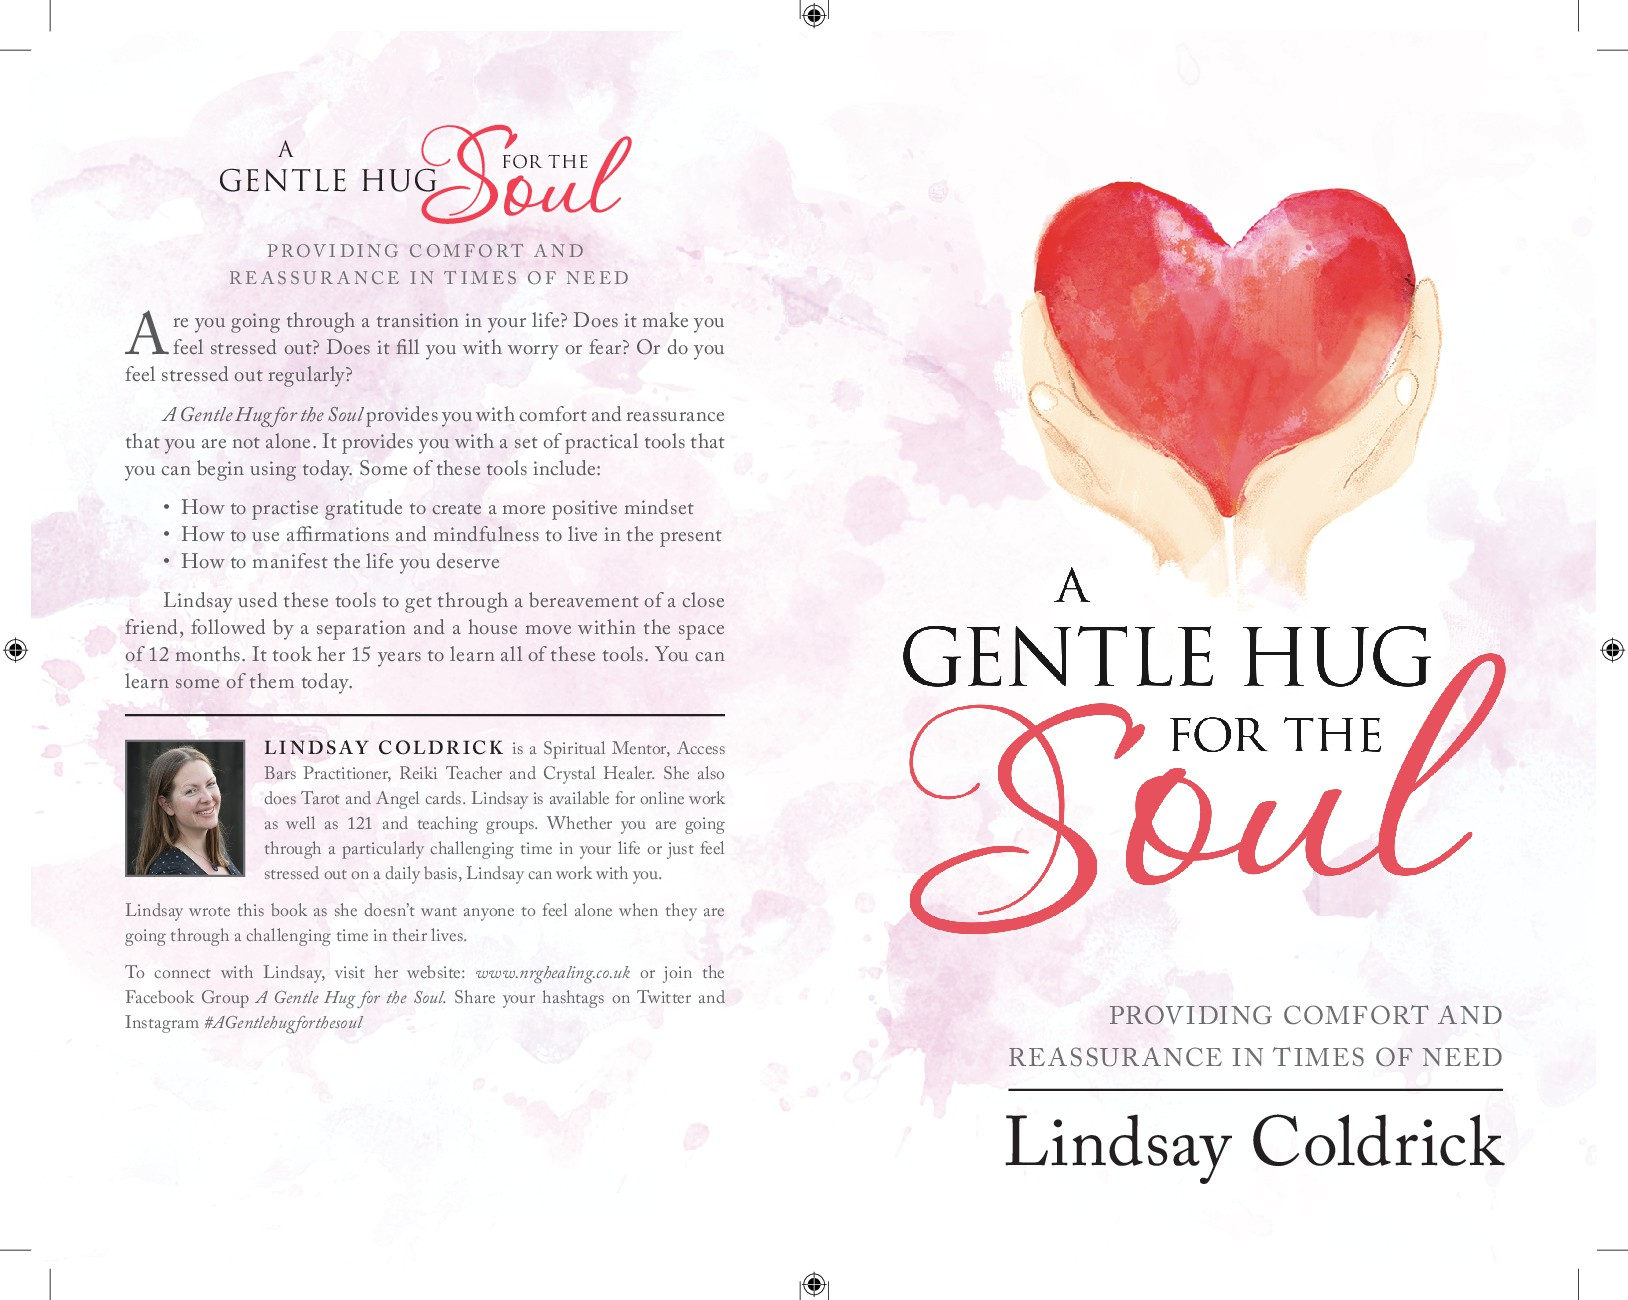 Do you feel as though you need A Gentle Hug for the Soul? Bookcover design wanted